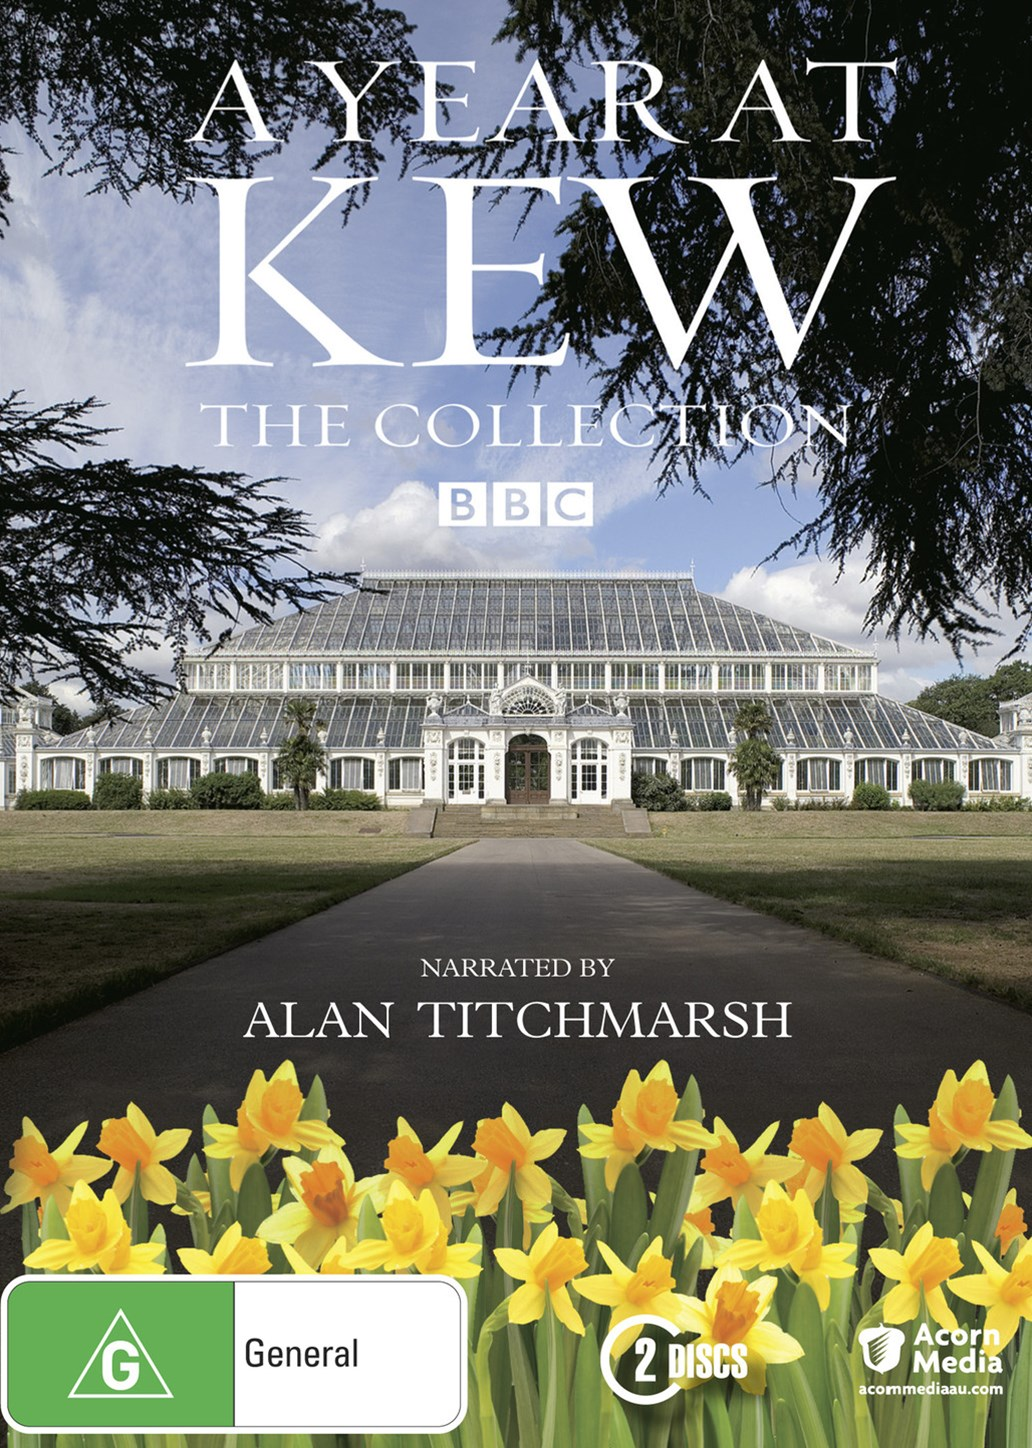 Year at Kew, a - Series 1